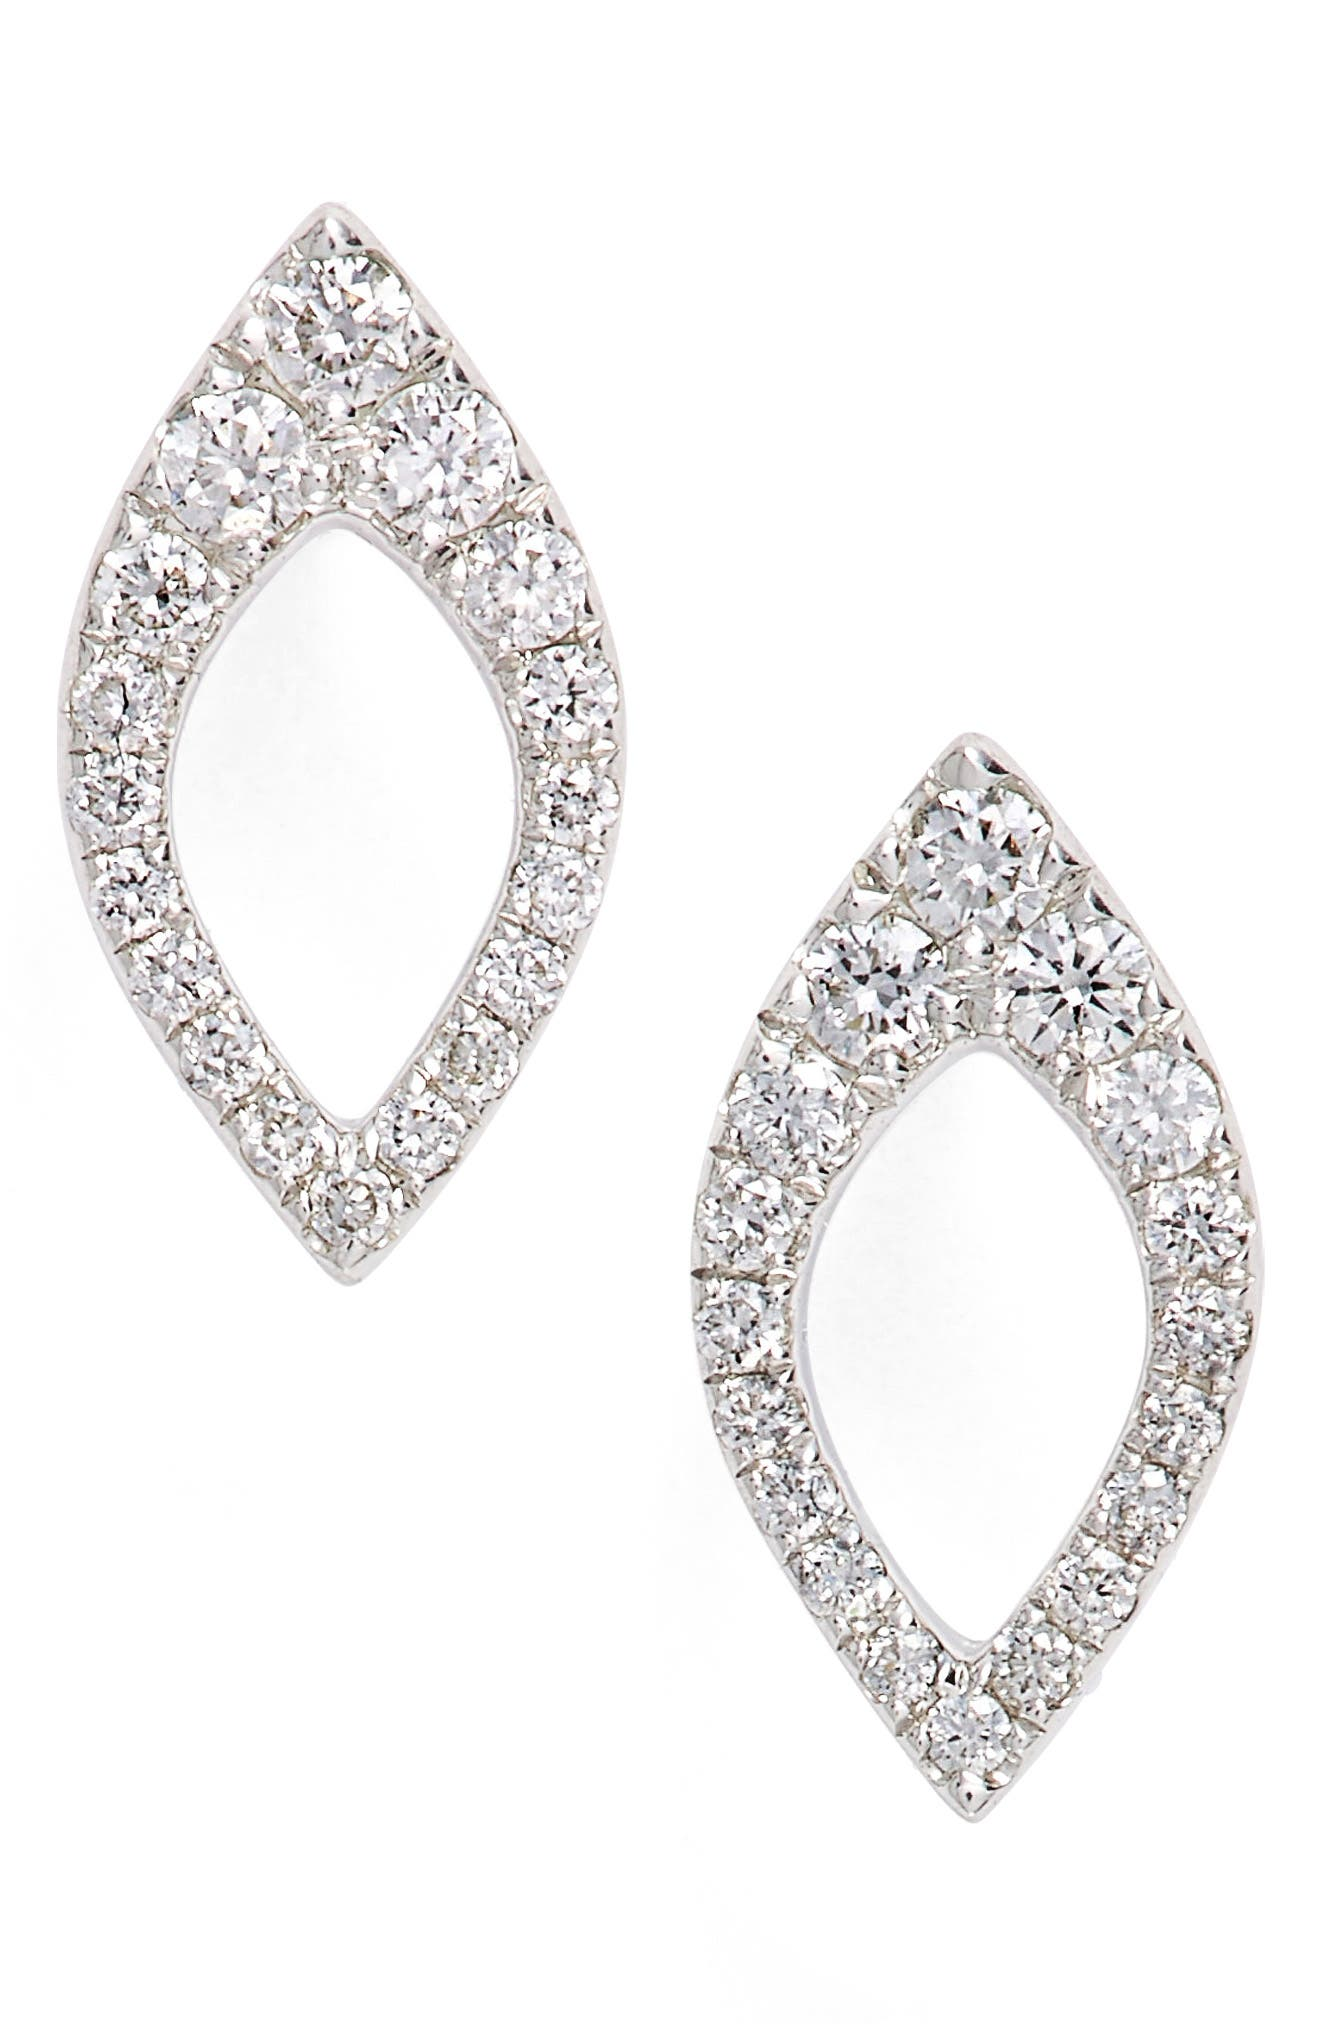 Marquise Diamond Studs,                             Main thumbnail 1, color,                             White Gold